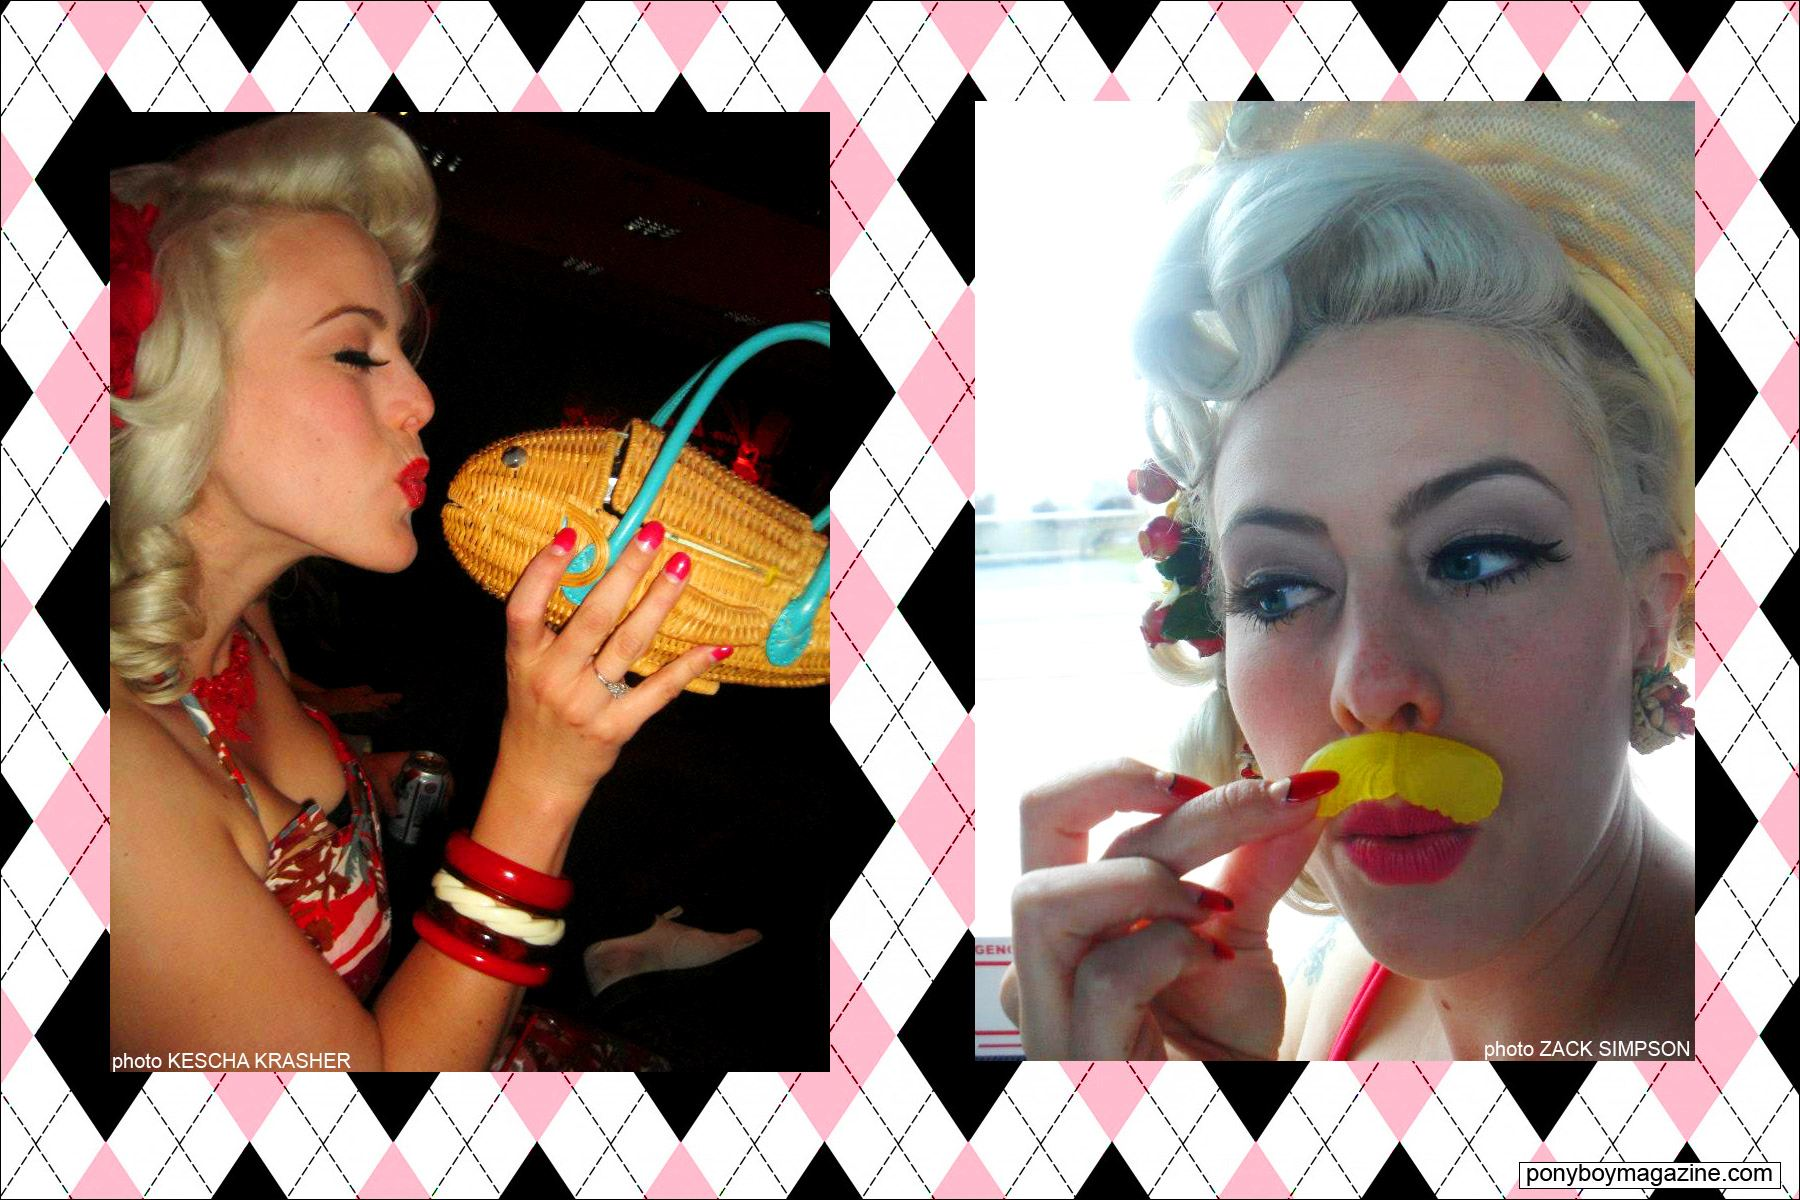 Photos of the Rockabilly Socialite, Dollie Deville. Ponyboy Magazine.